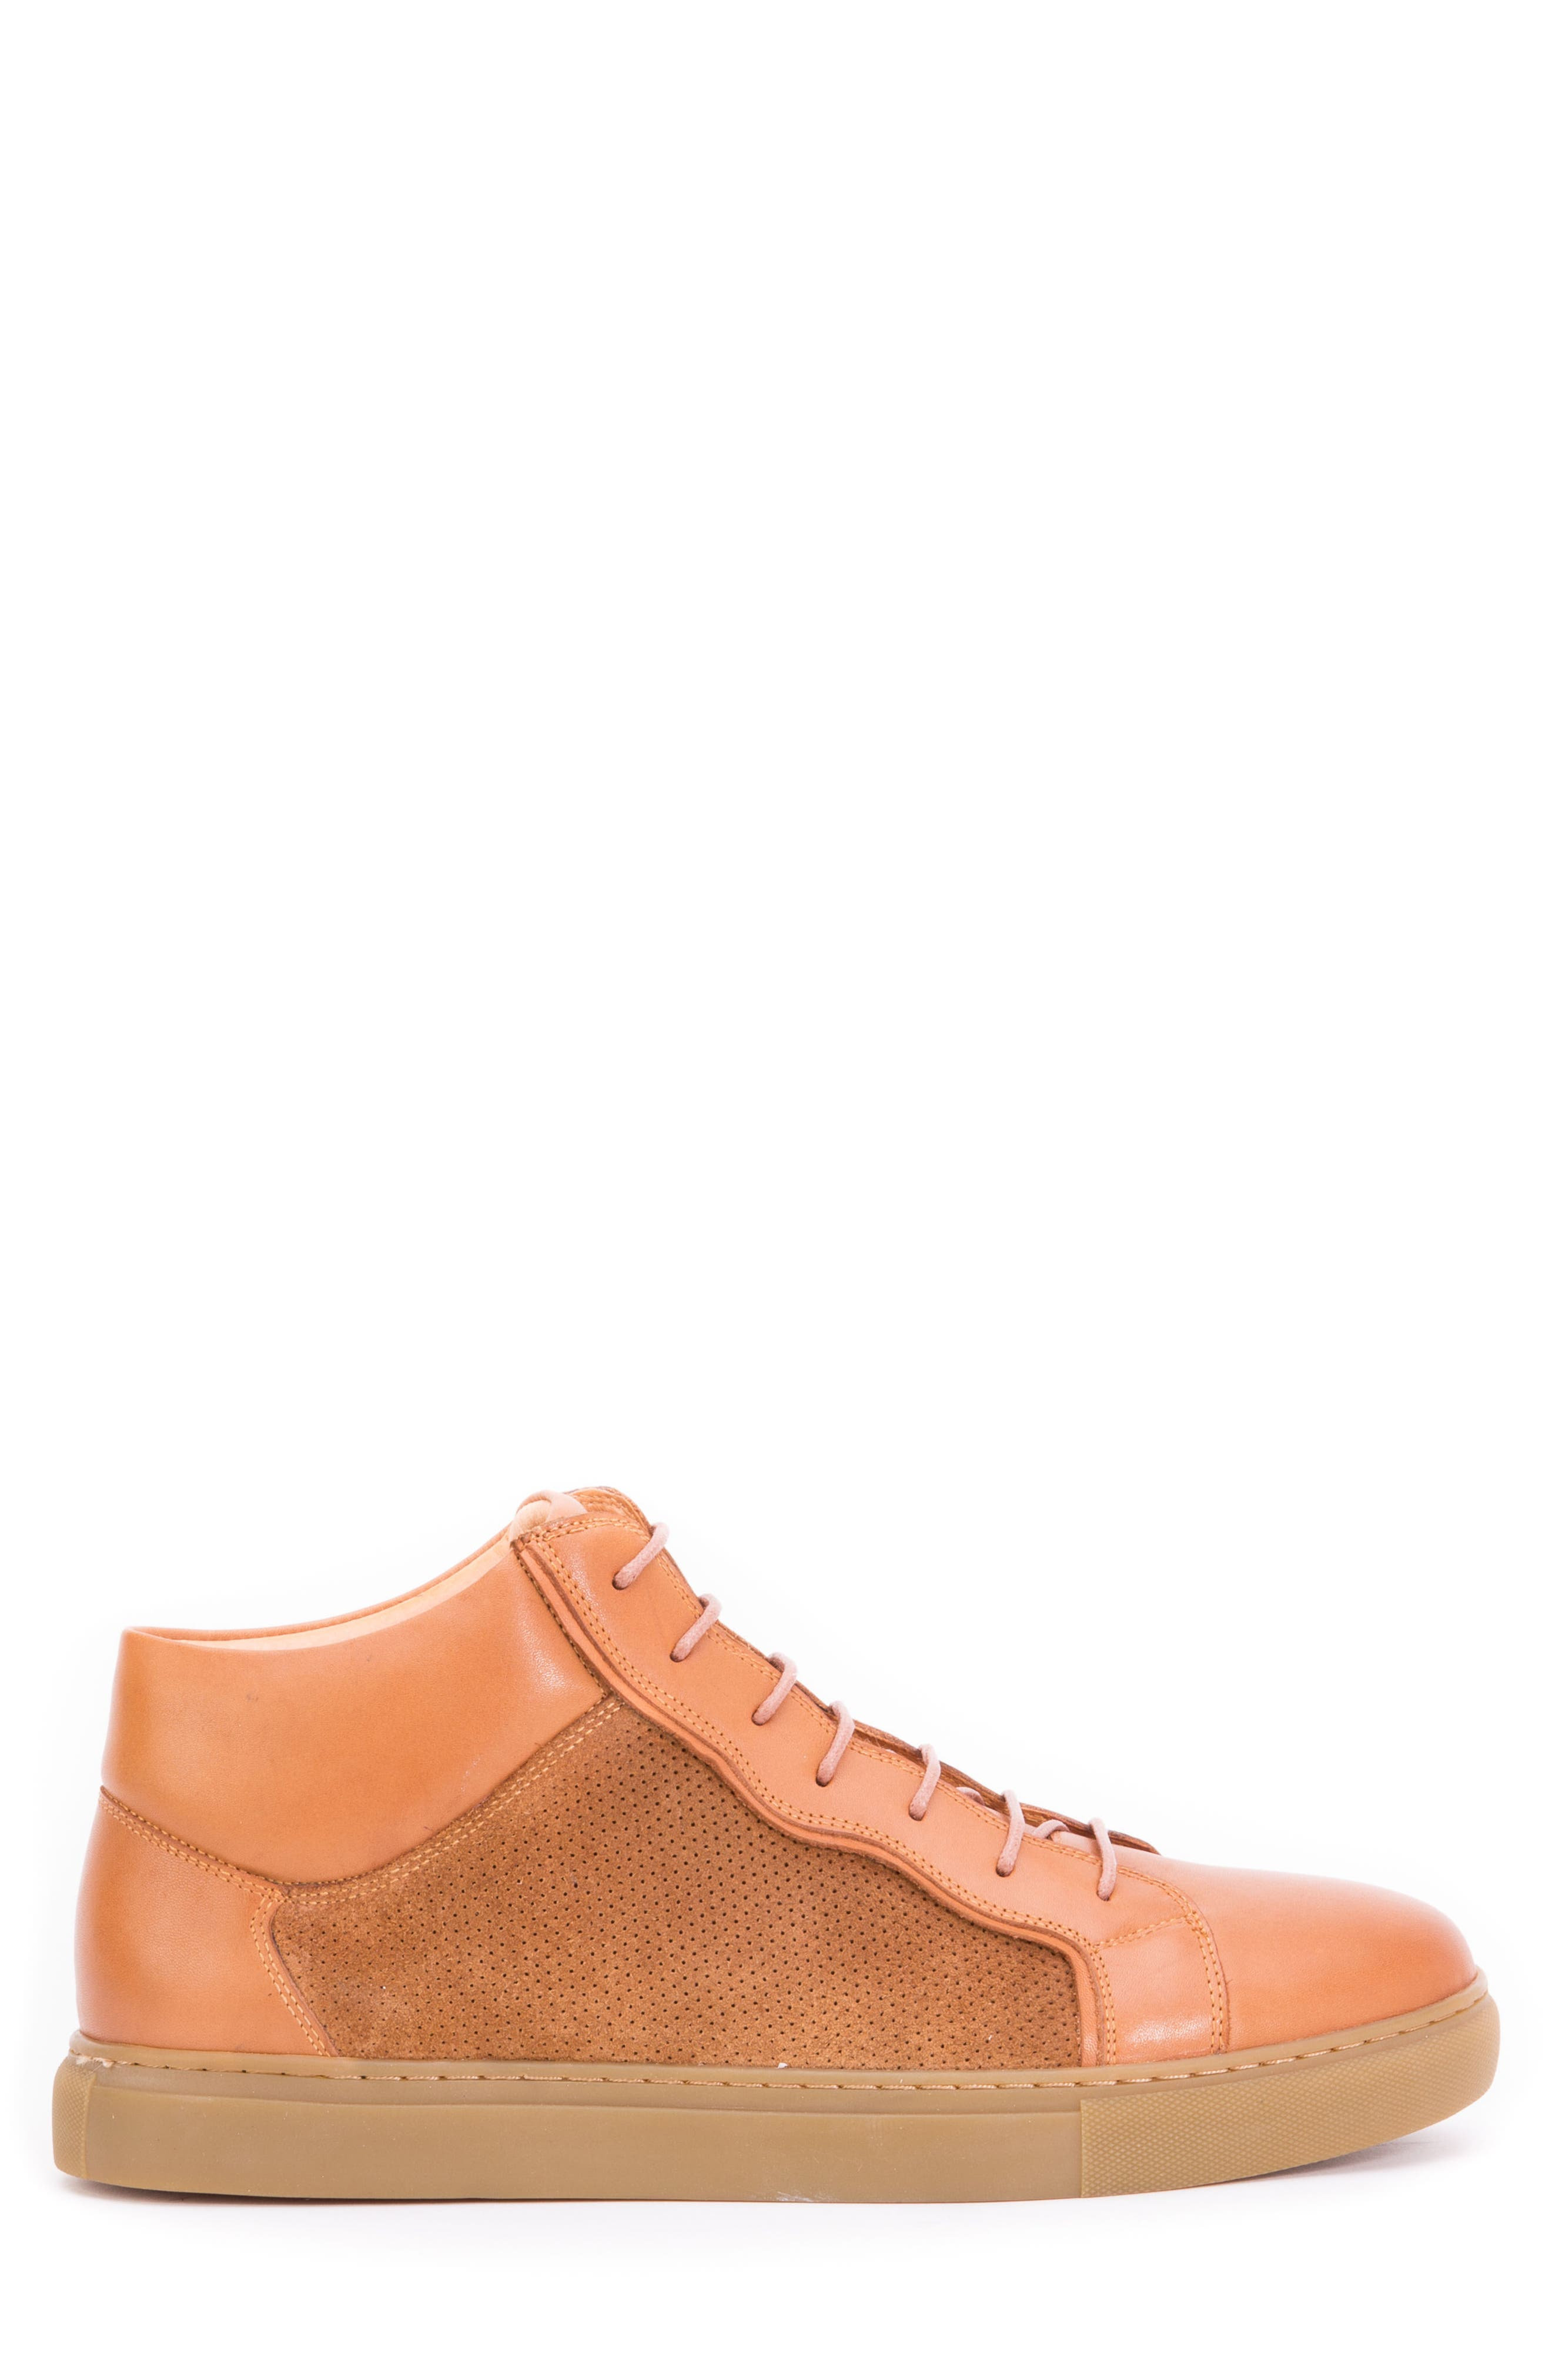 Twist Perforated High Top Sneaker,                             Alternate thumbnail 2, color,                             Cognac Leather/ Suede